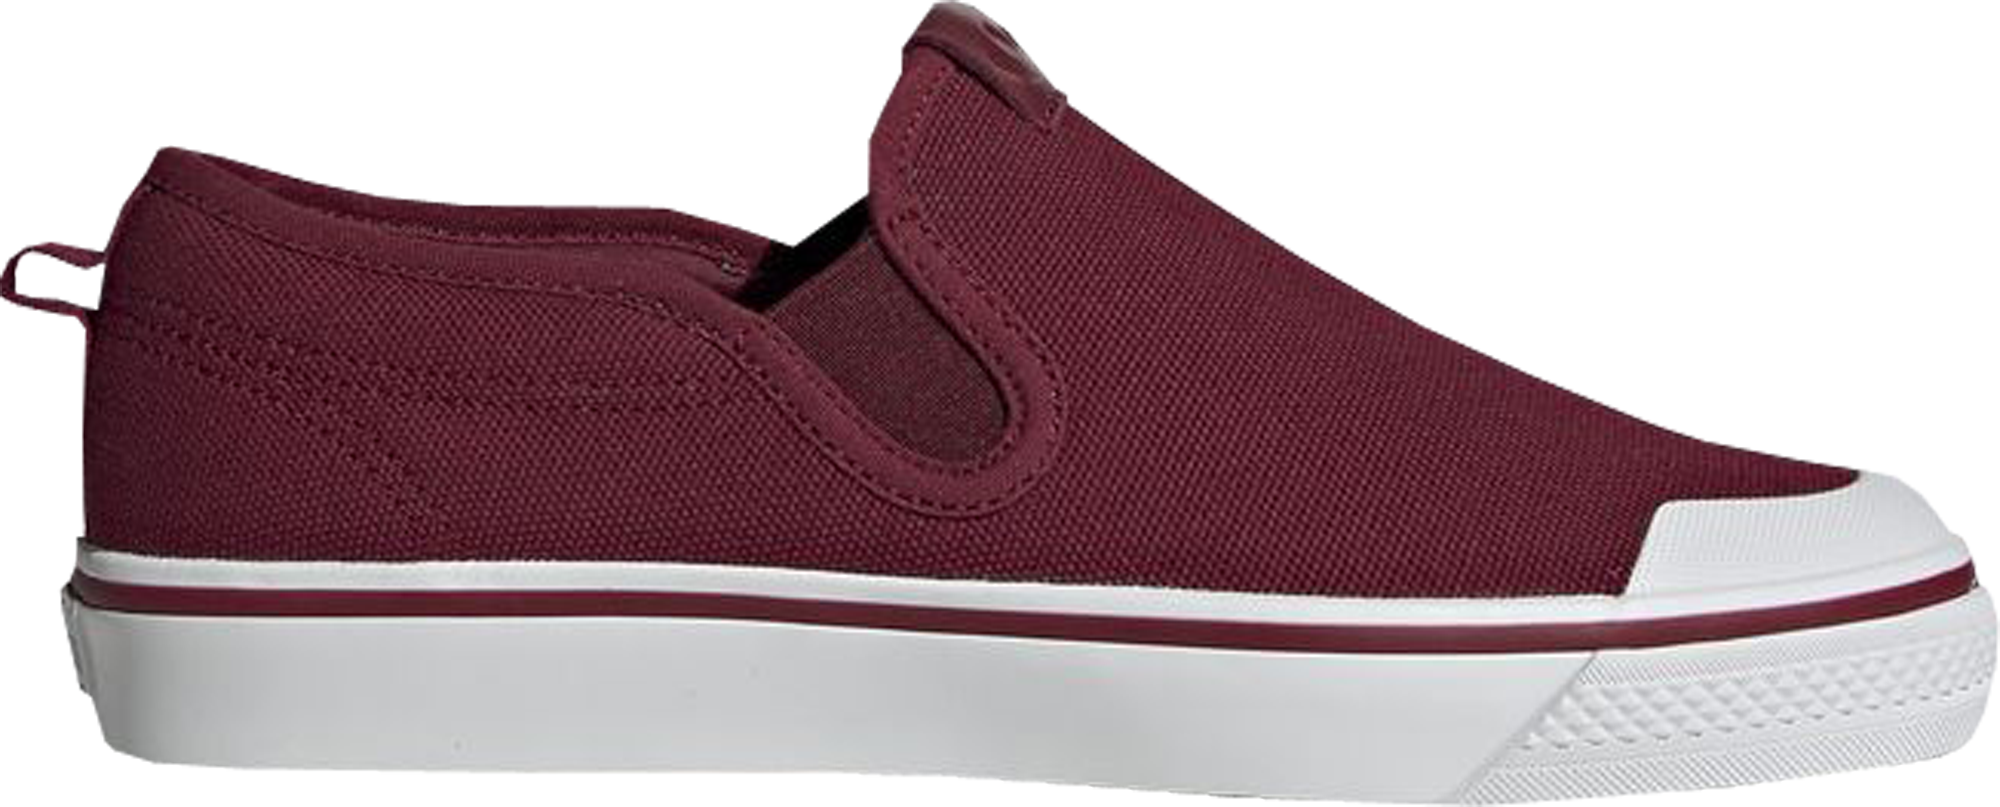 adidas Nizza Slip-On Collegiate Burgundy (W)